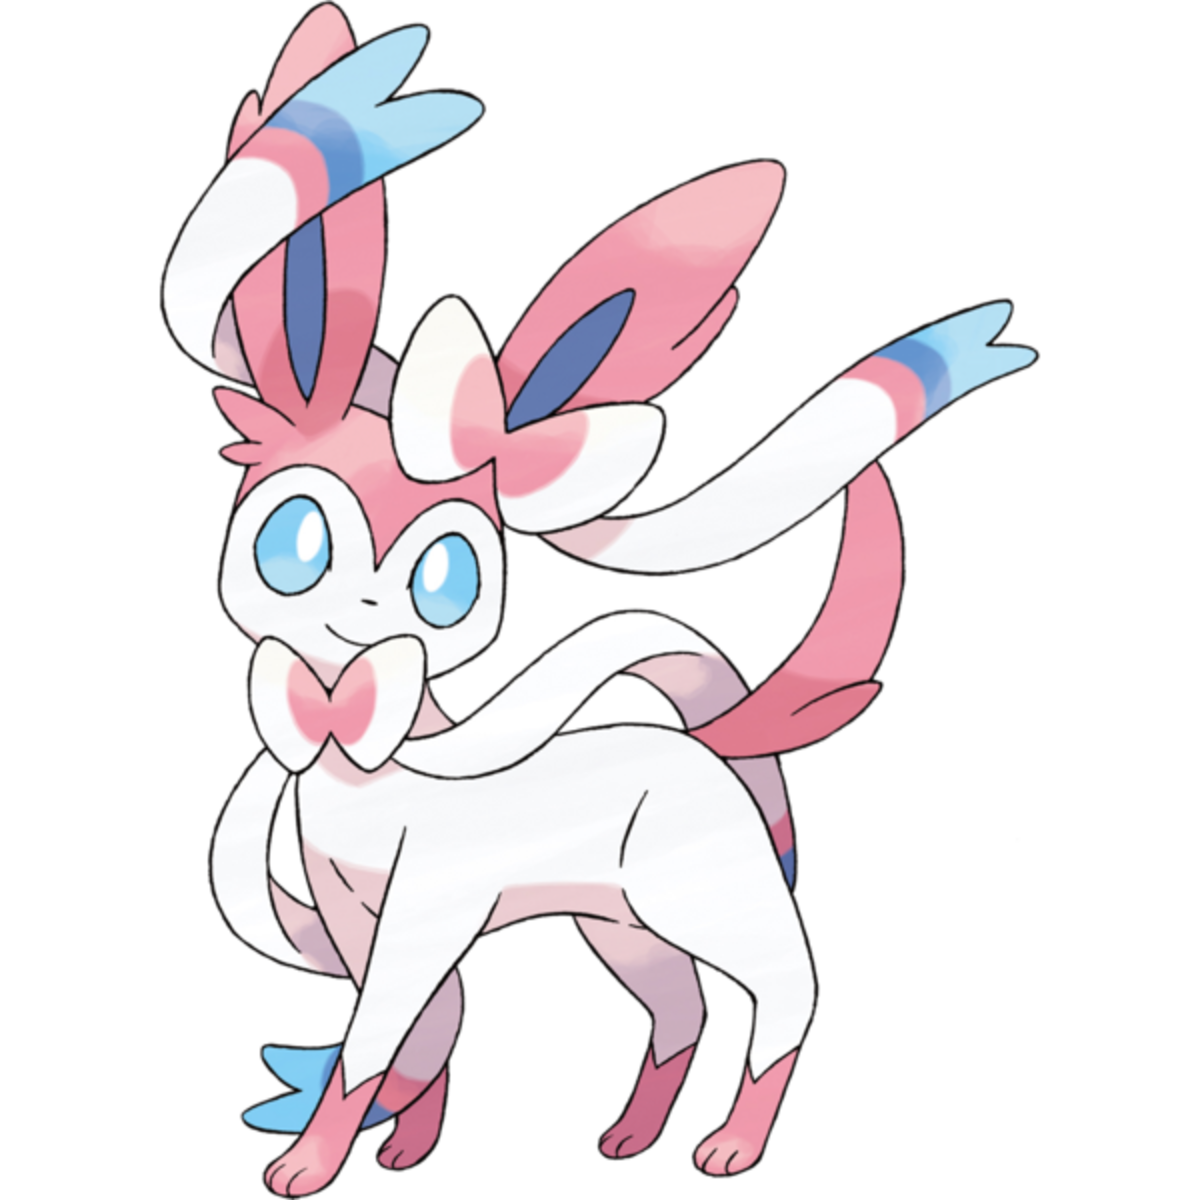 Competitive Pokemon Guides: Sylveon